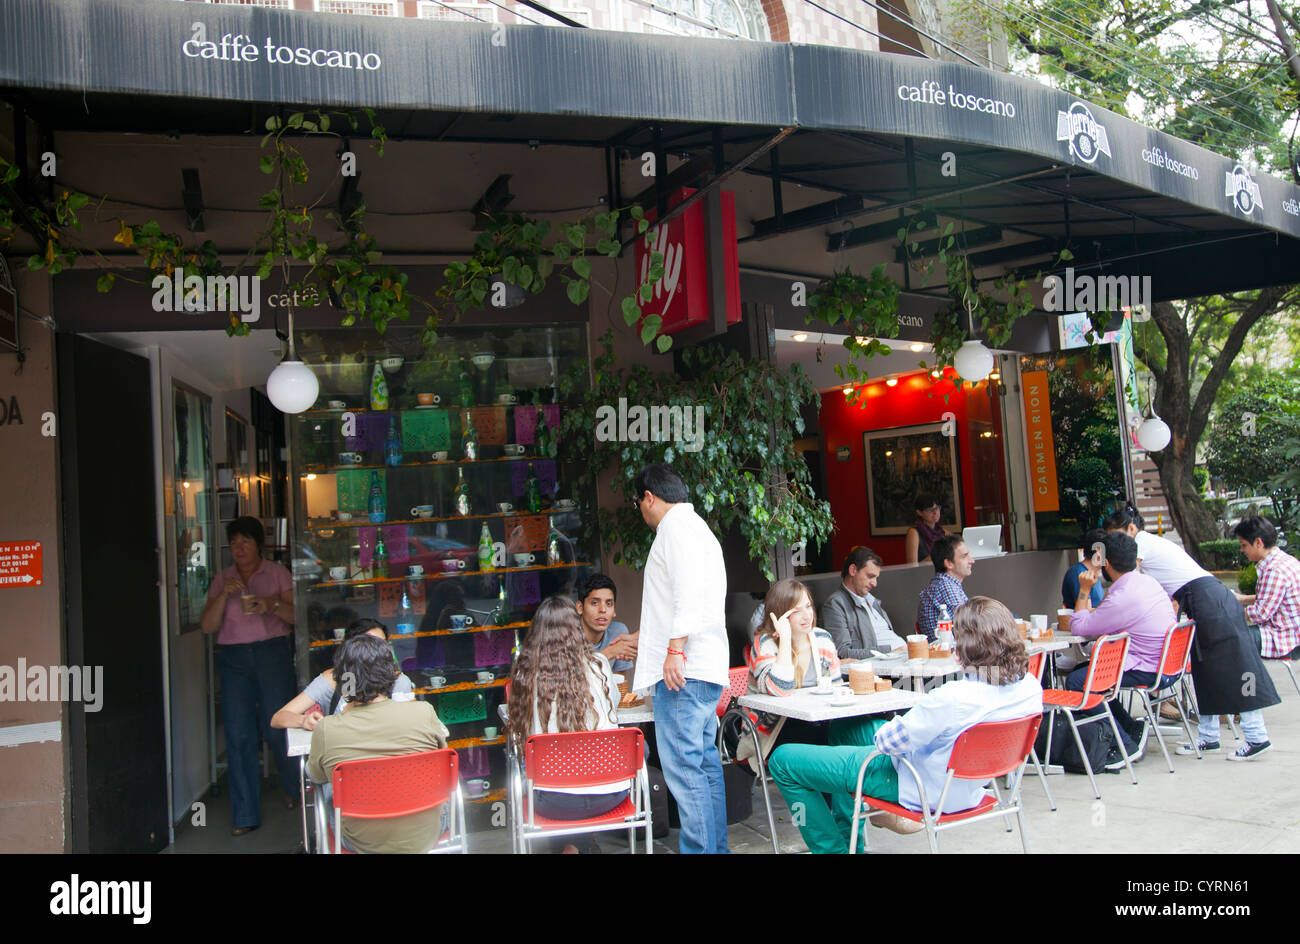 Caffe Toscano Restaurant Cafe in La Condesa i Mexico City DF Stock ... 0b80b62522c